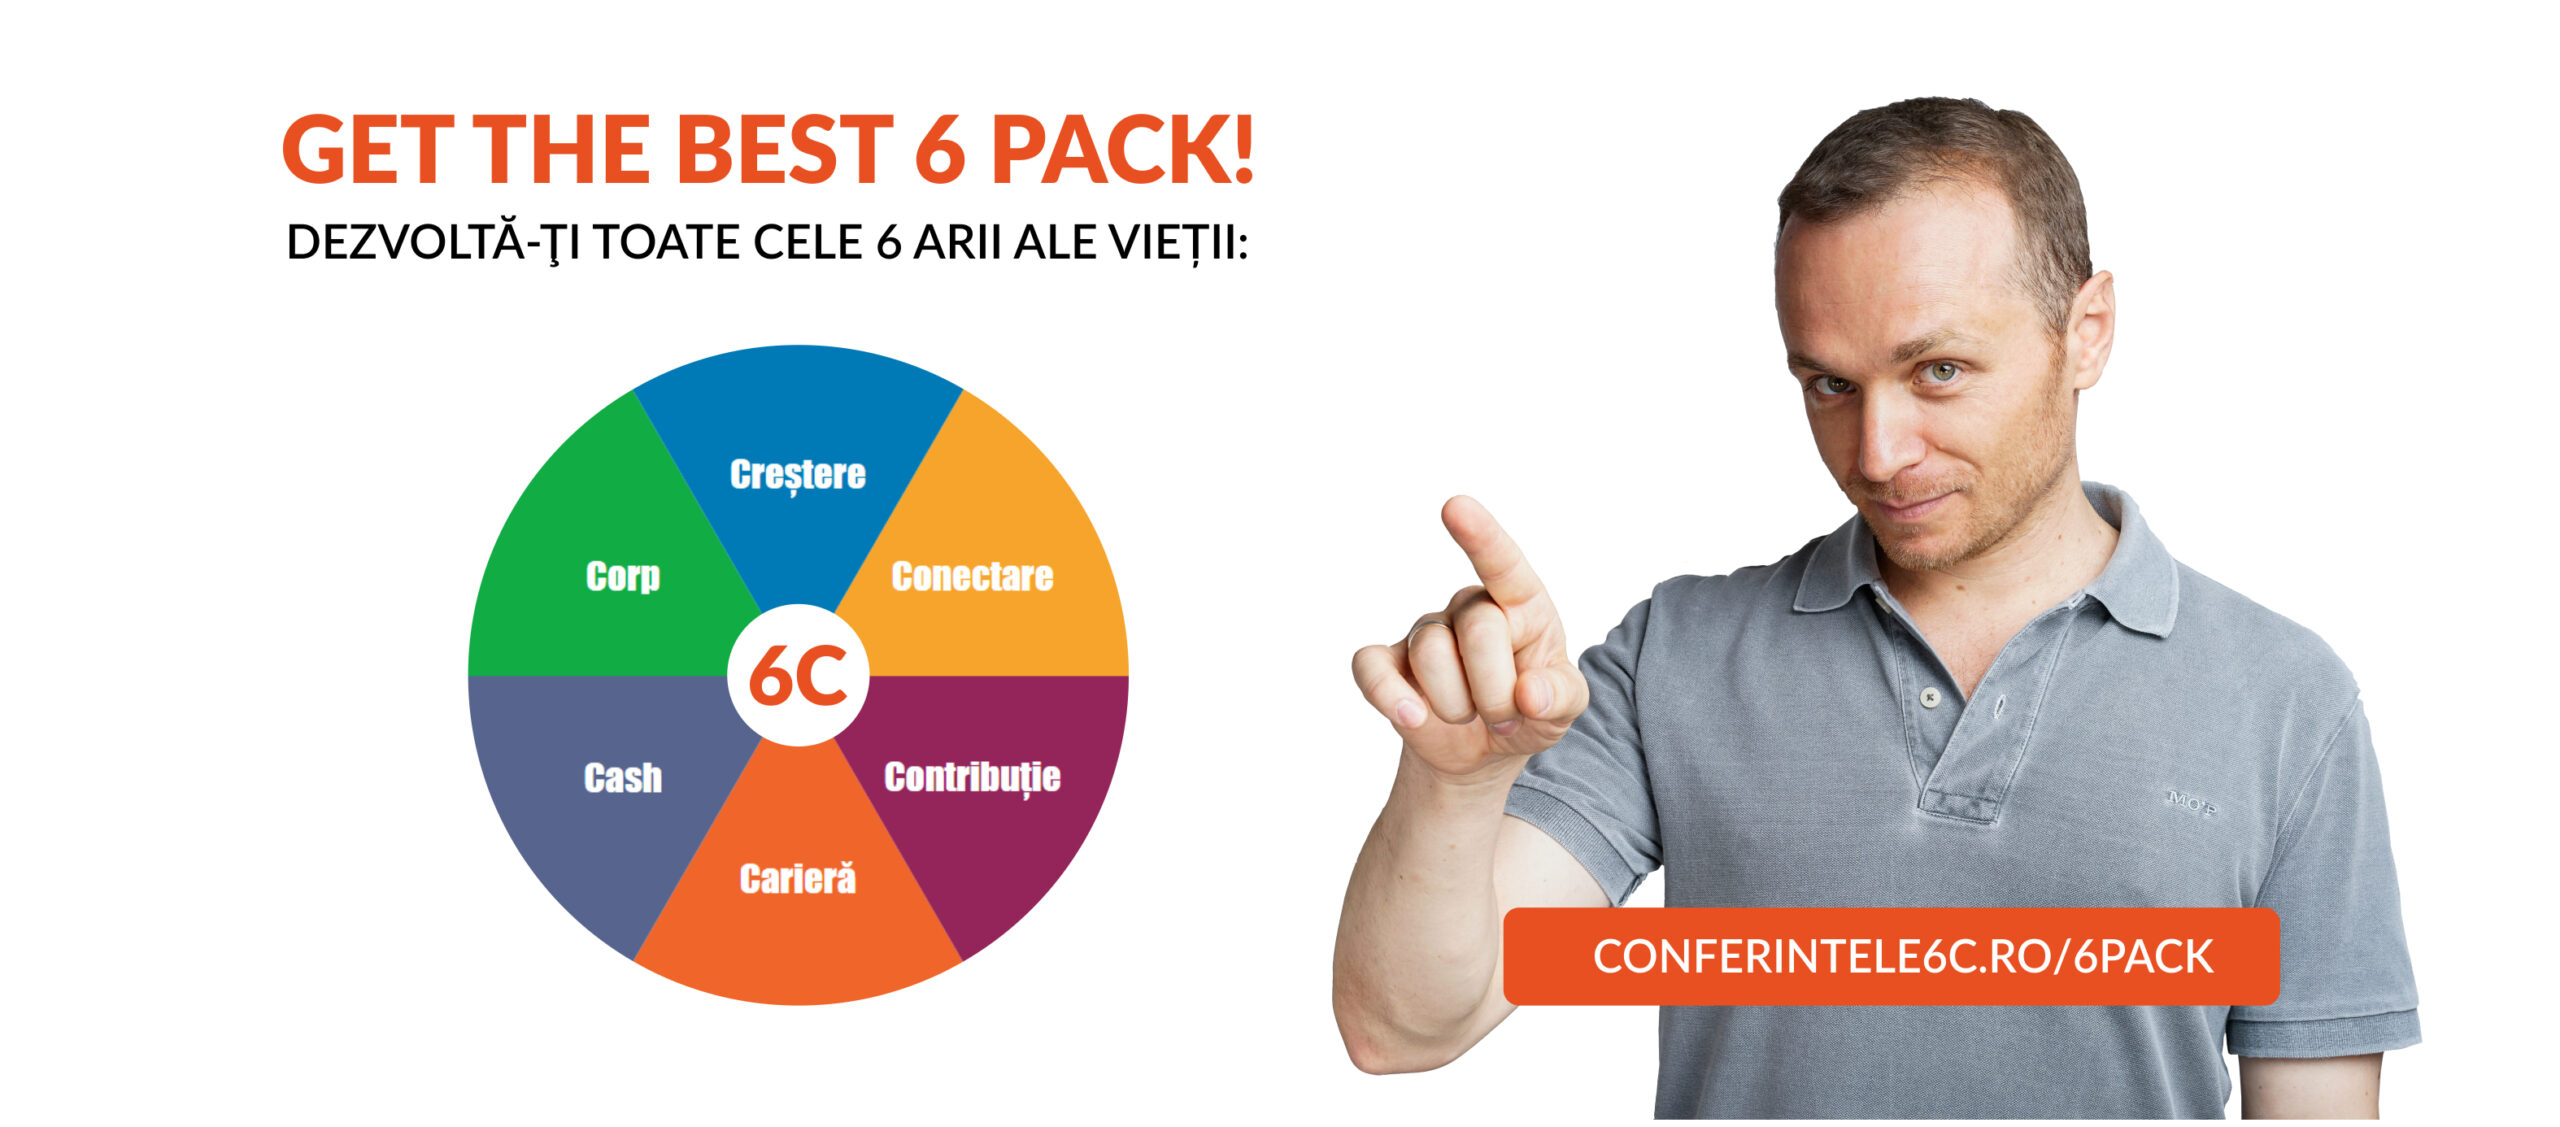 Conferintele 6C: Get The Best 6 Pack!